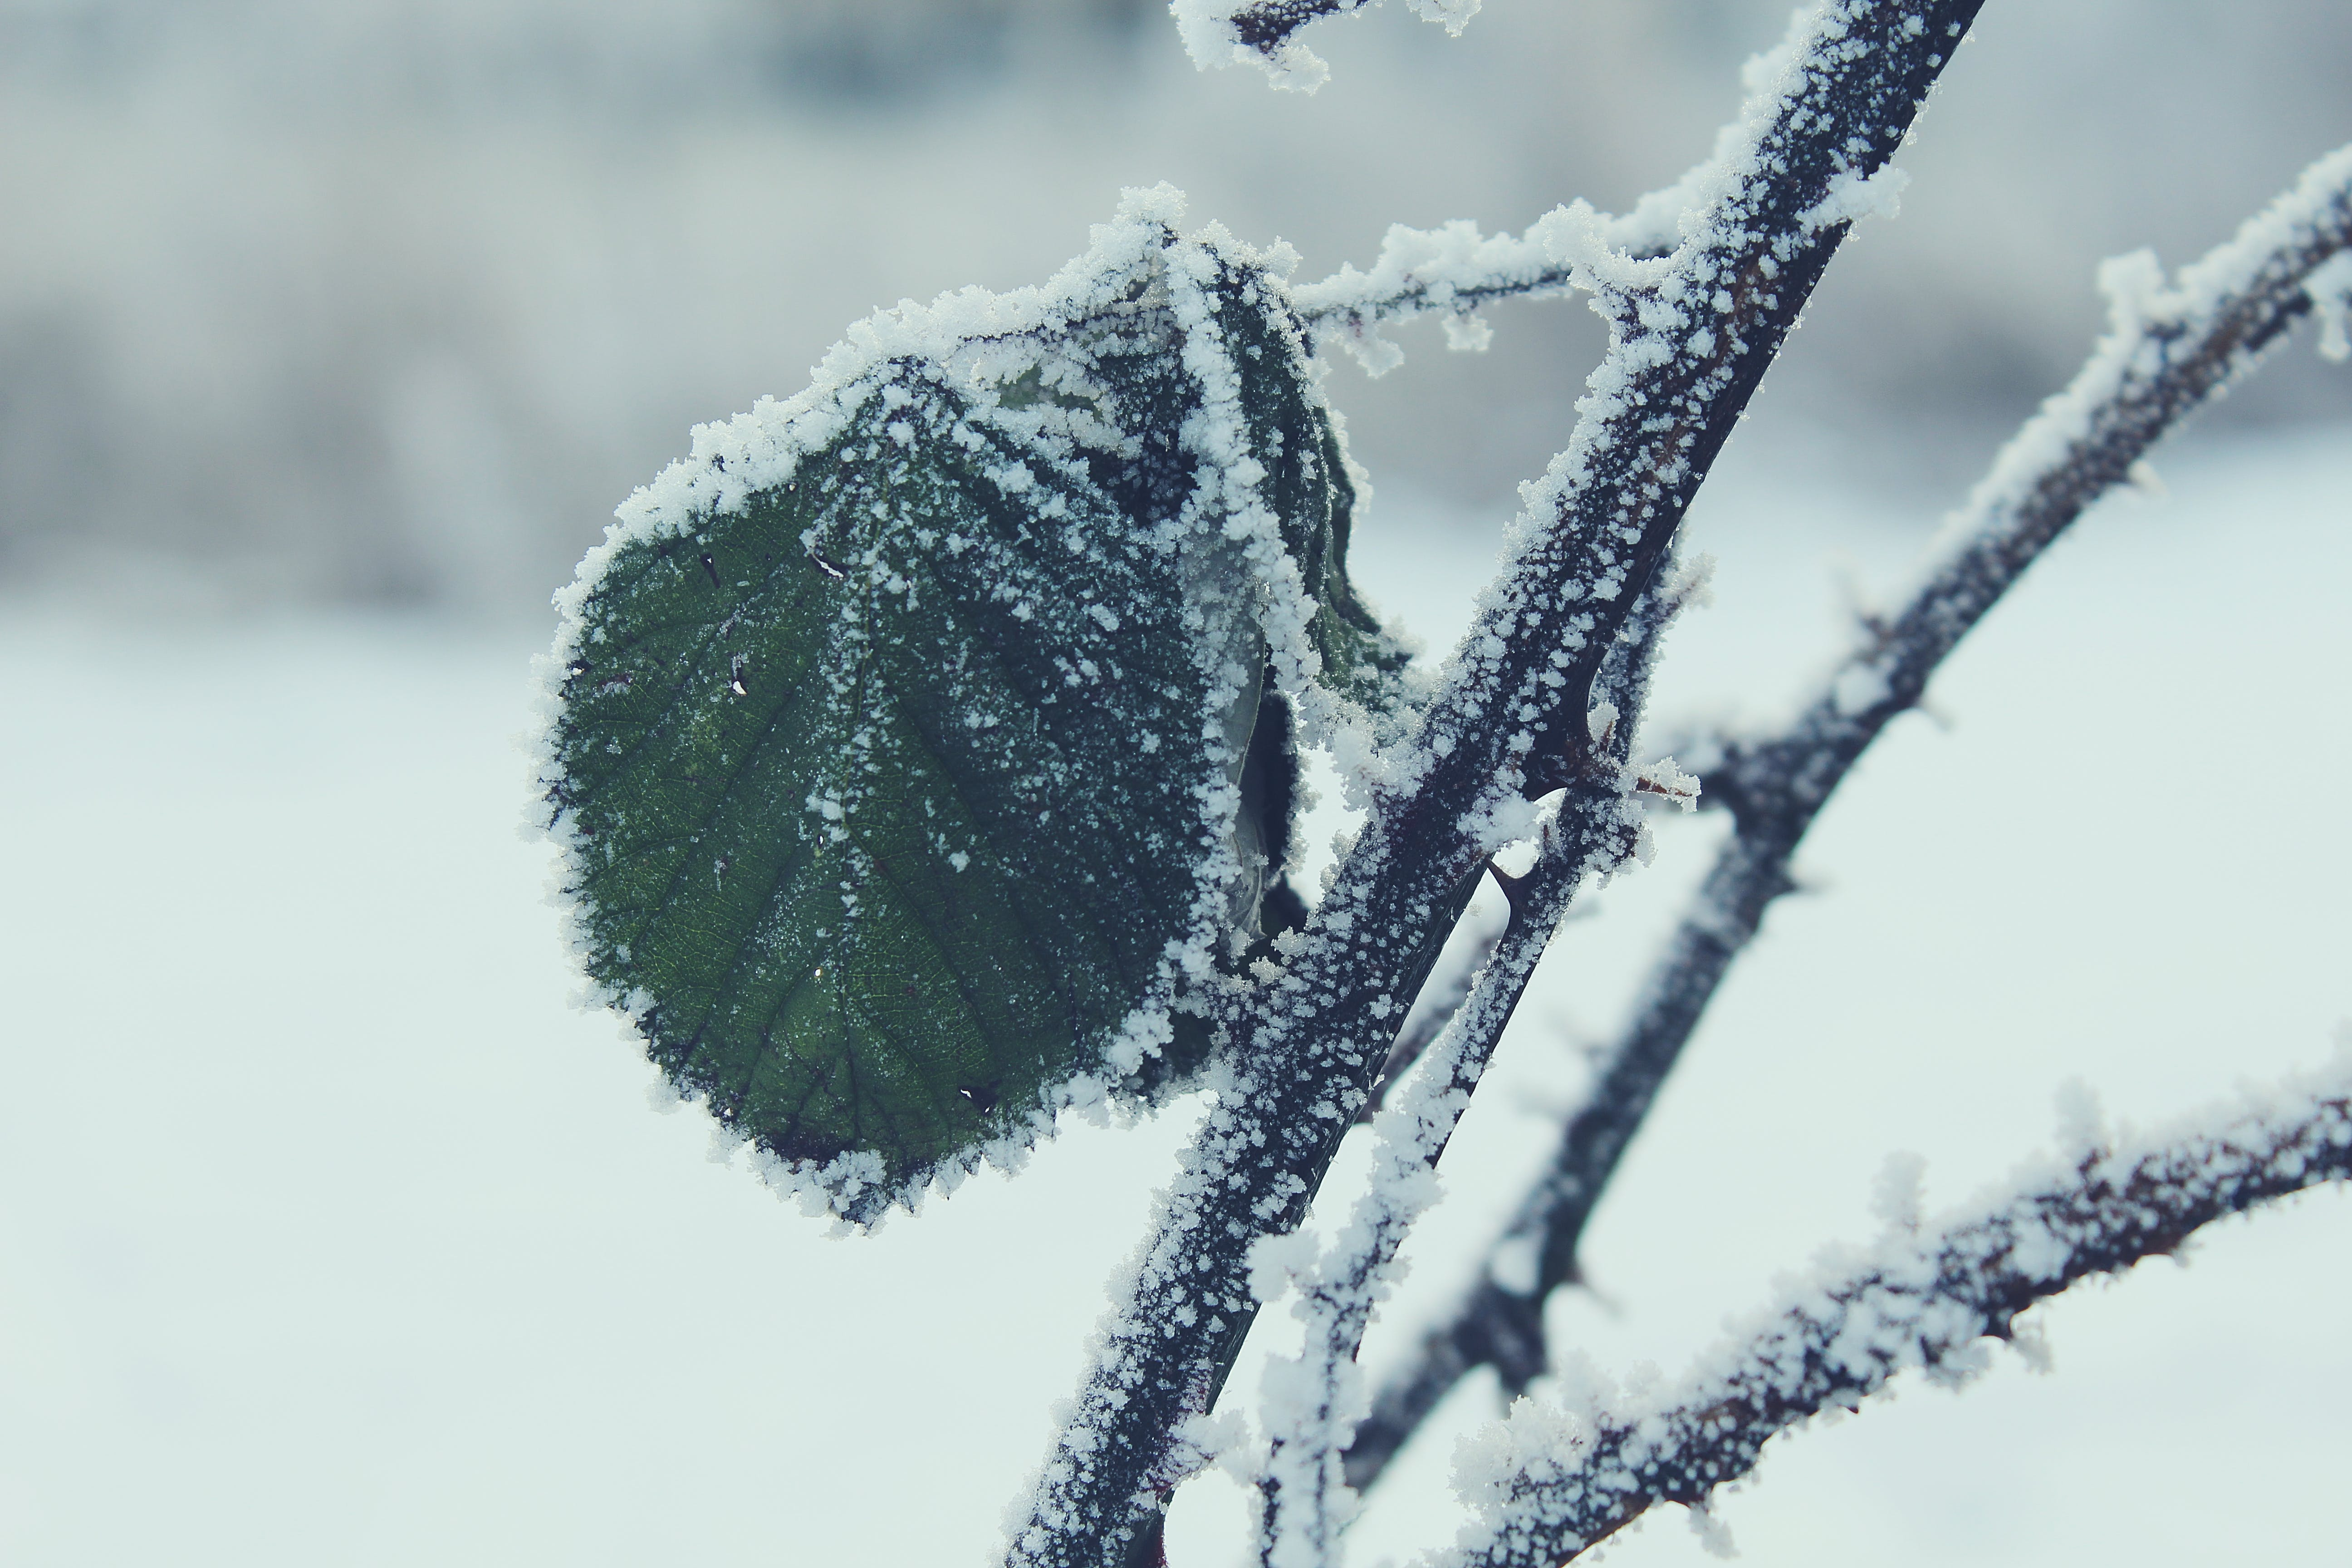 Selective Focus Photography of Green Leaf on Branch With Snow